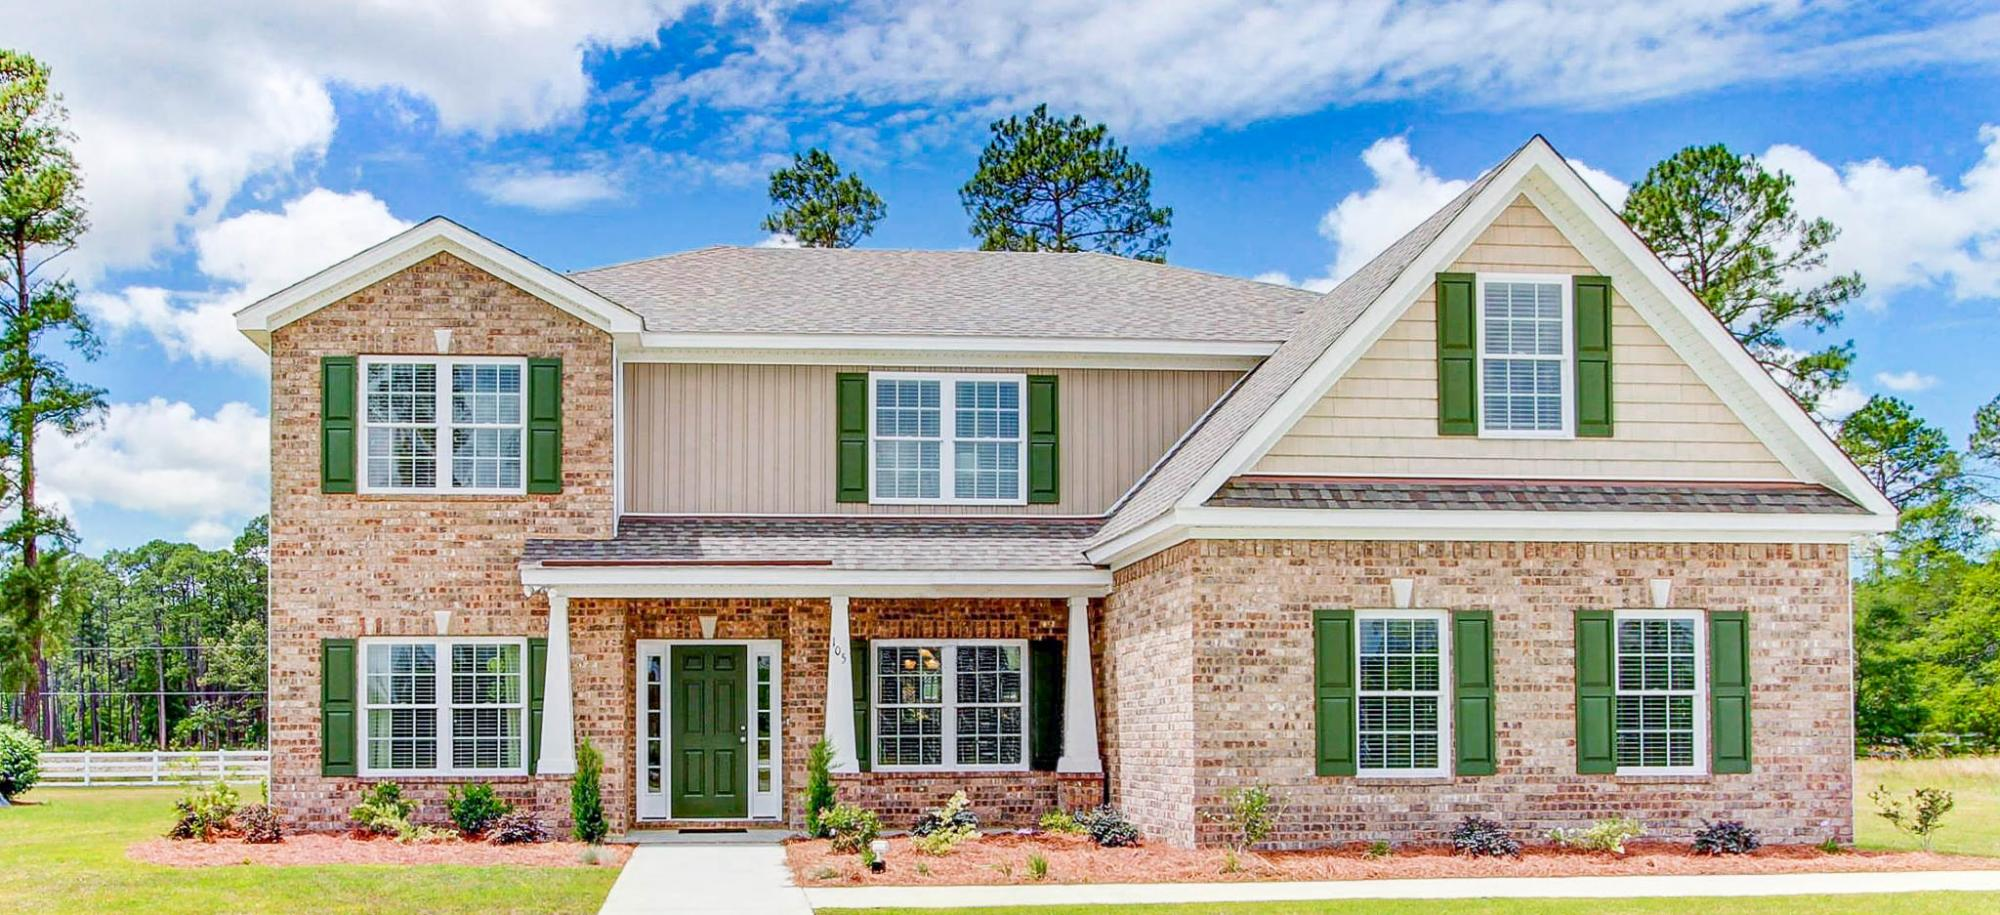 New Homes in Savannah GA | Beacon Builders